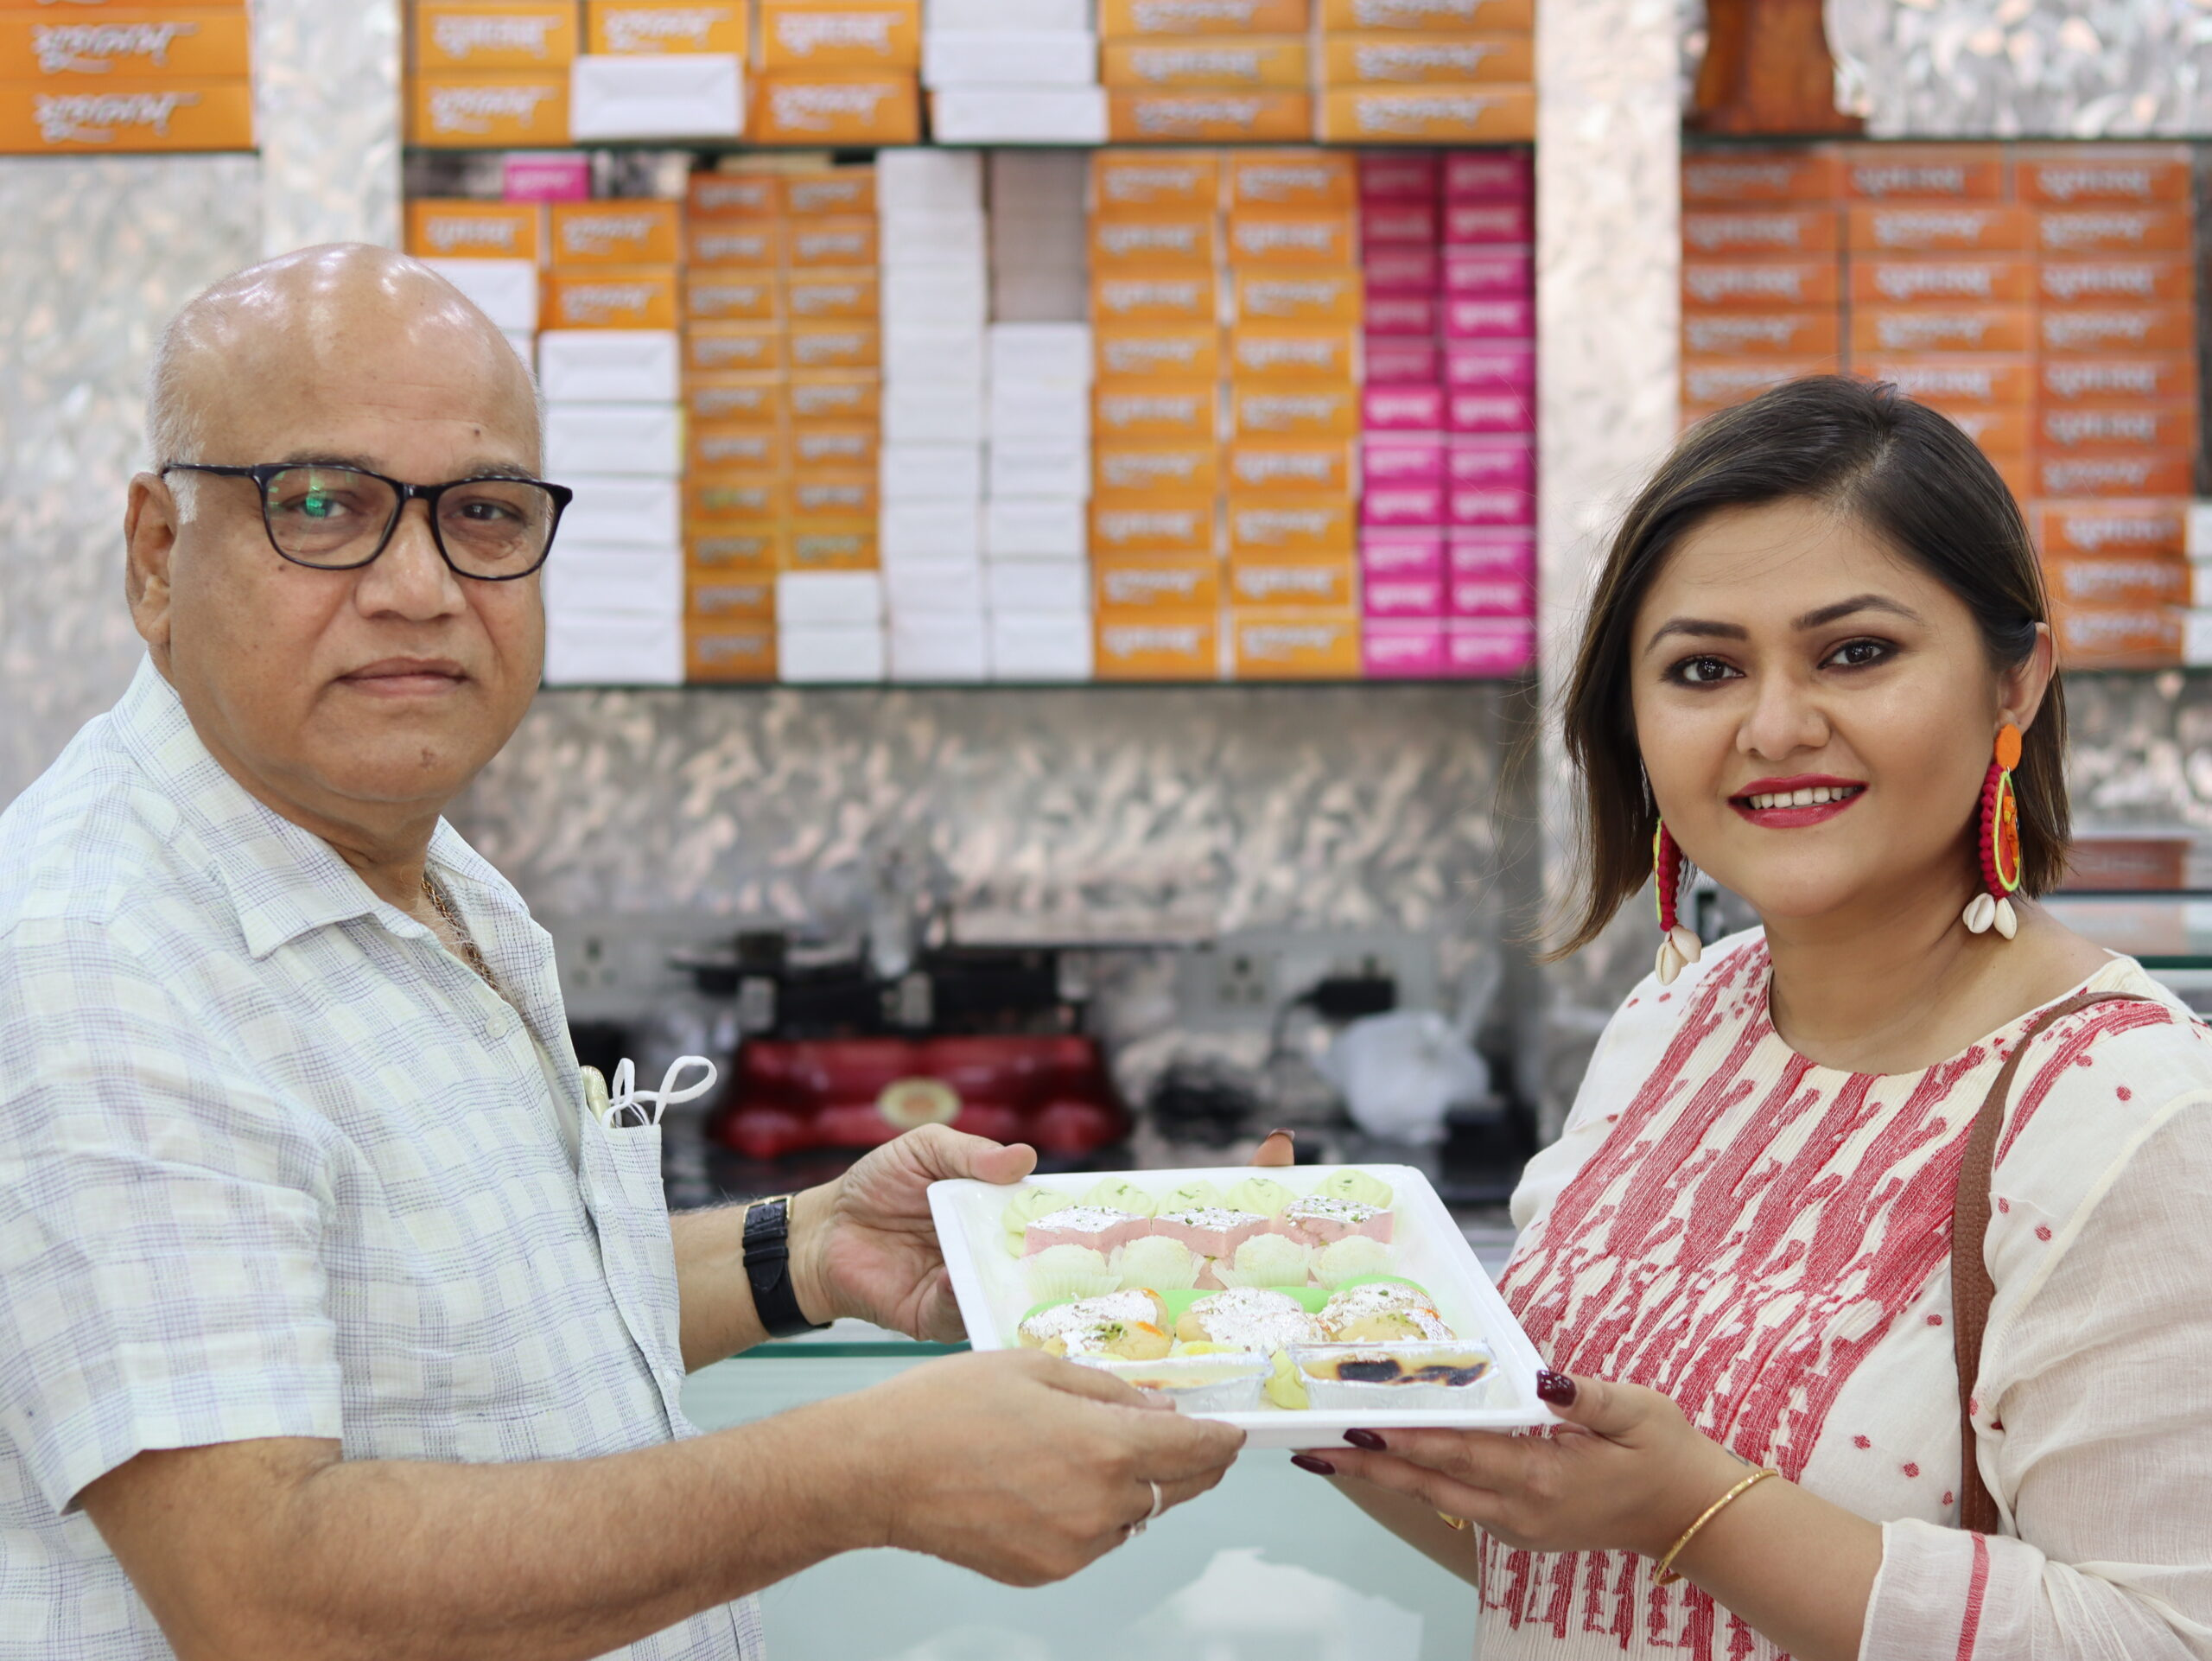 Jugal's celebrates 98 Years of serving sweets and smiles in the city